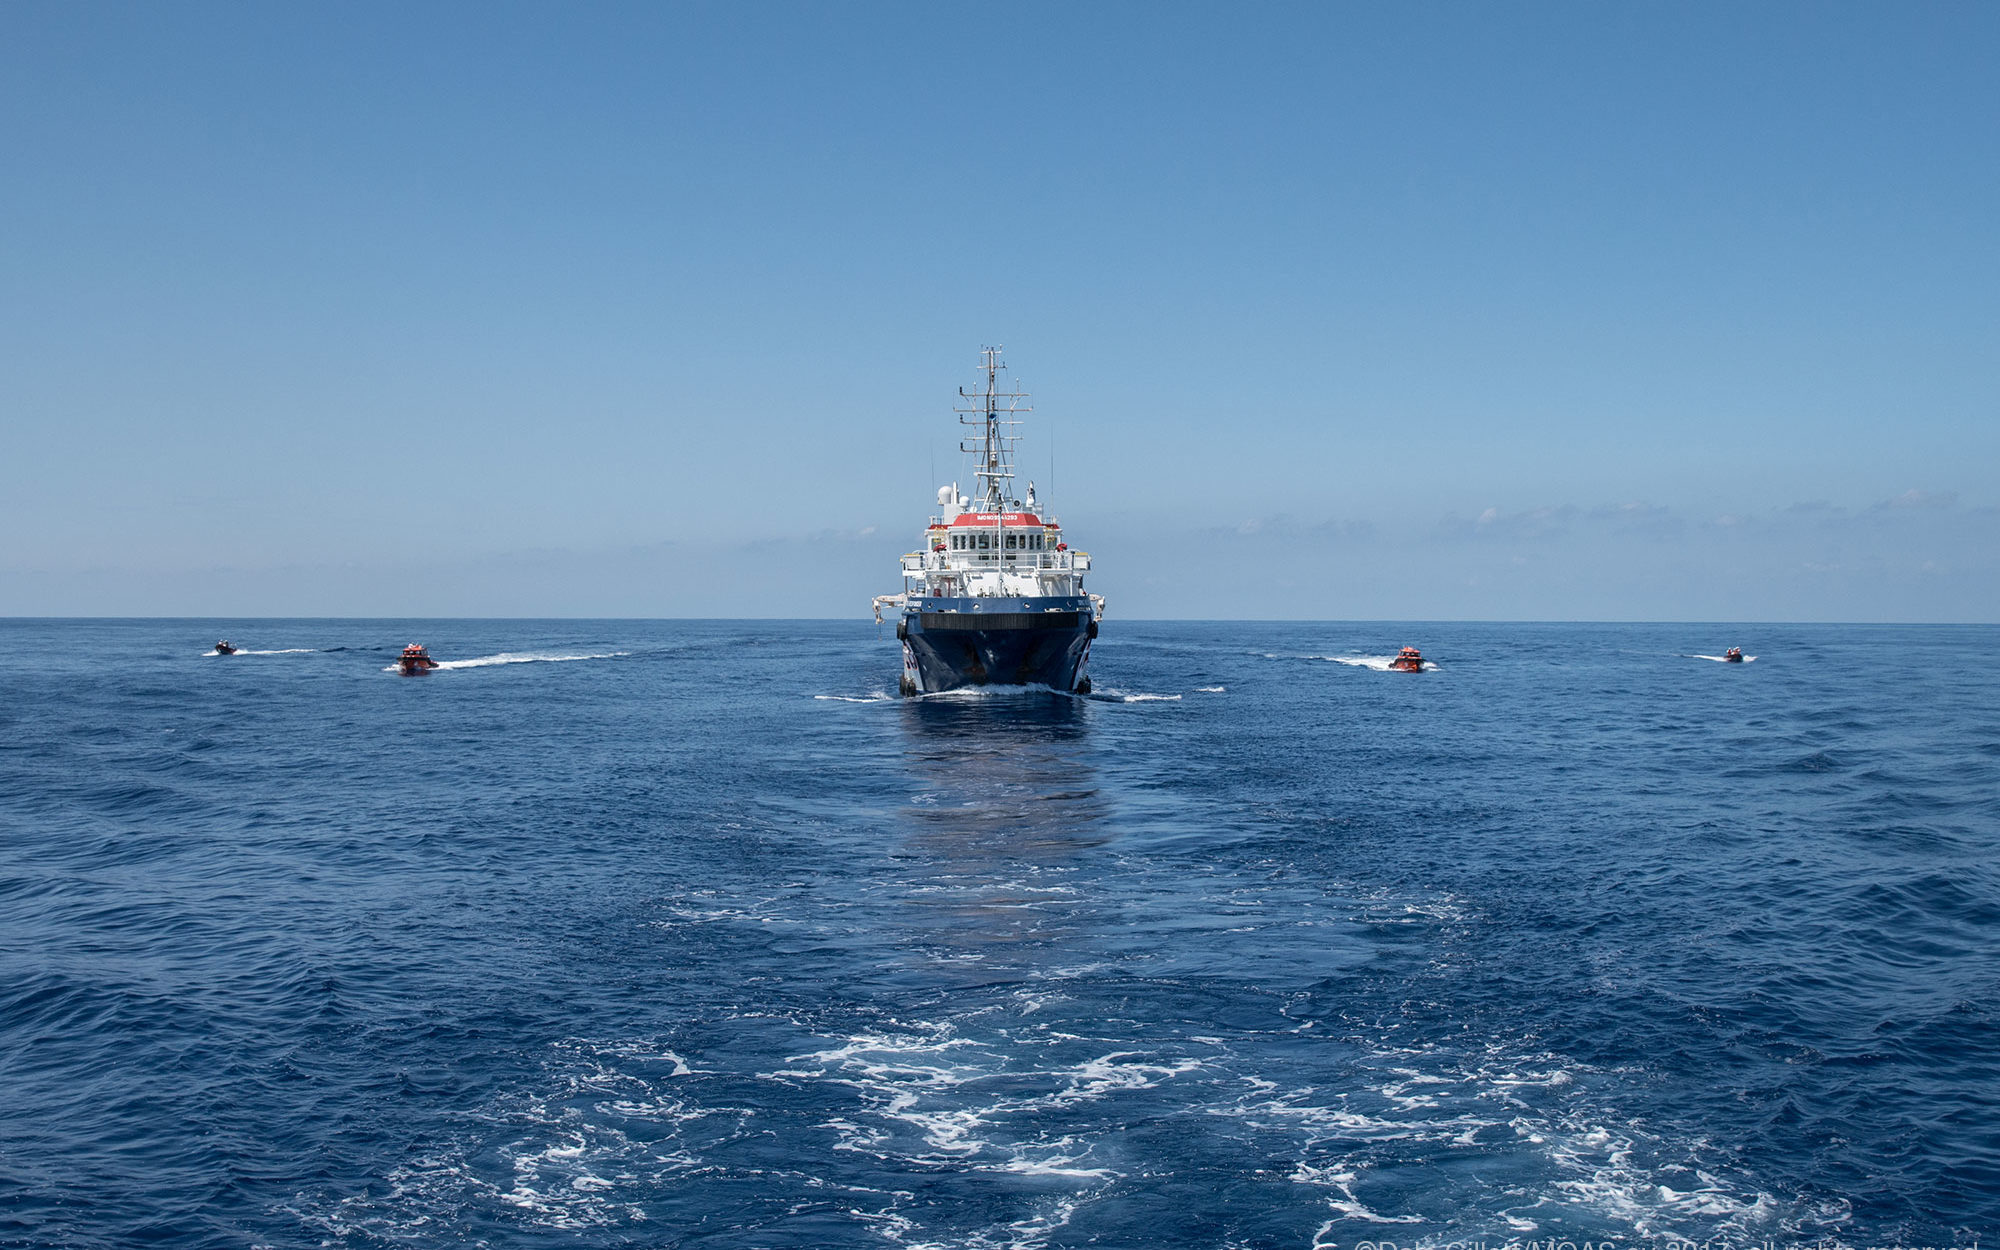 The rescue vessel belonging to Malta-based Migrant Offshore Aid Station (MOAS) crosses the Mediterranean